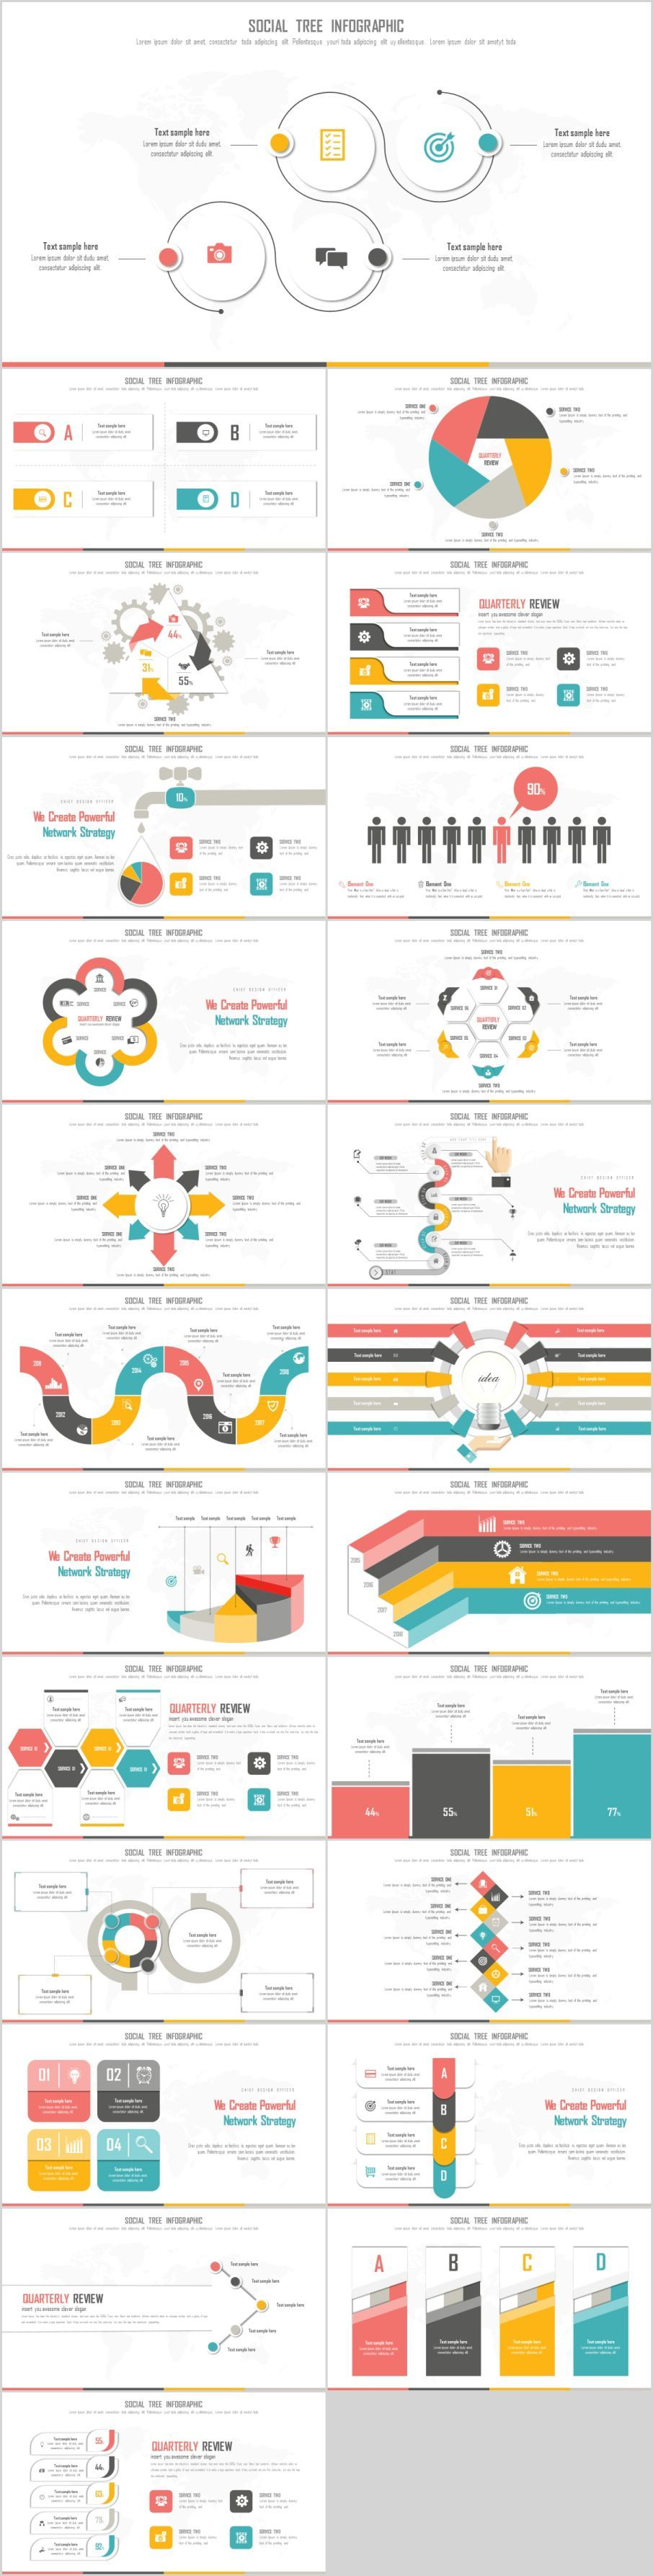 24 Best infographic Design PowerPoint templatesThe highest quality PowerPoint Templates and Keynote Templates download